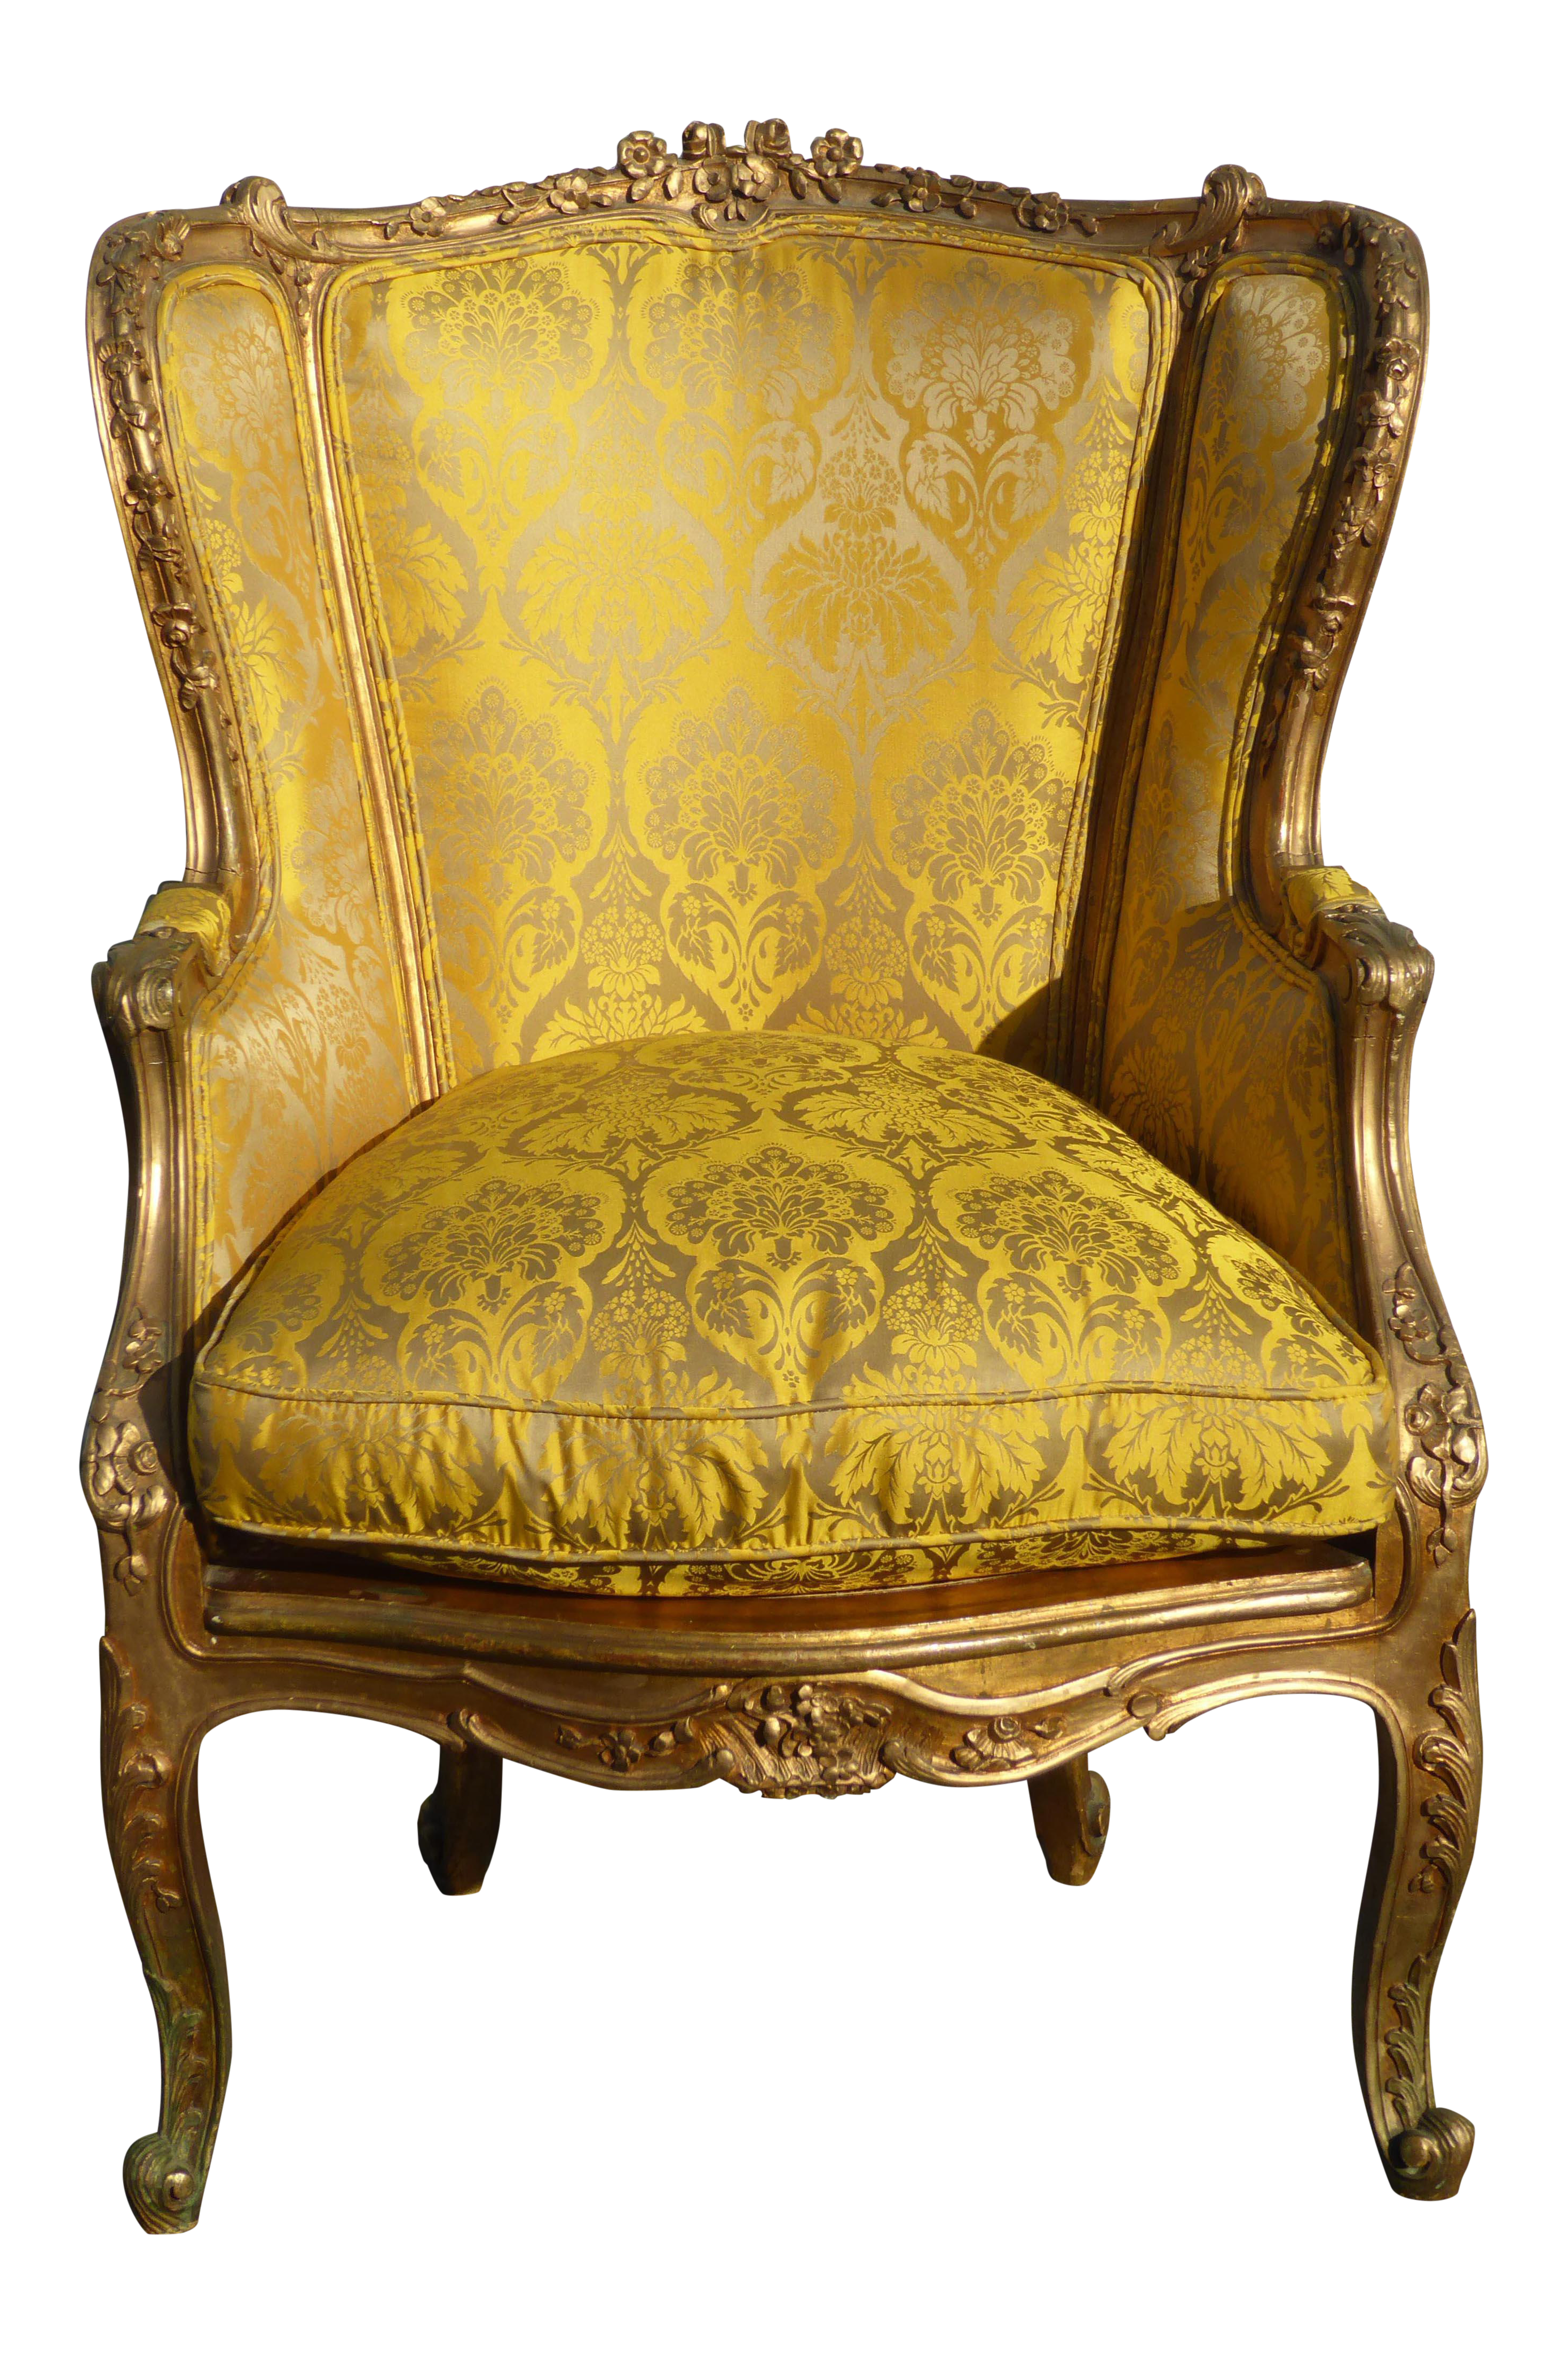 French Rococo Louis XVI Wingback Gold Floral Accent Chair With